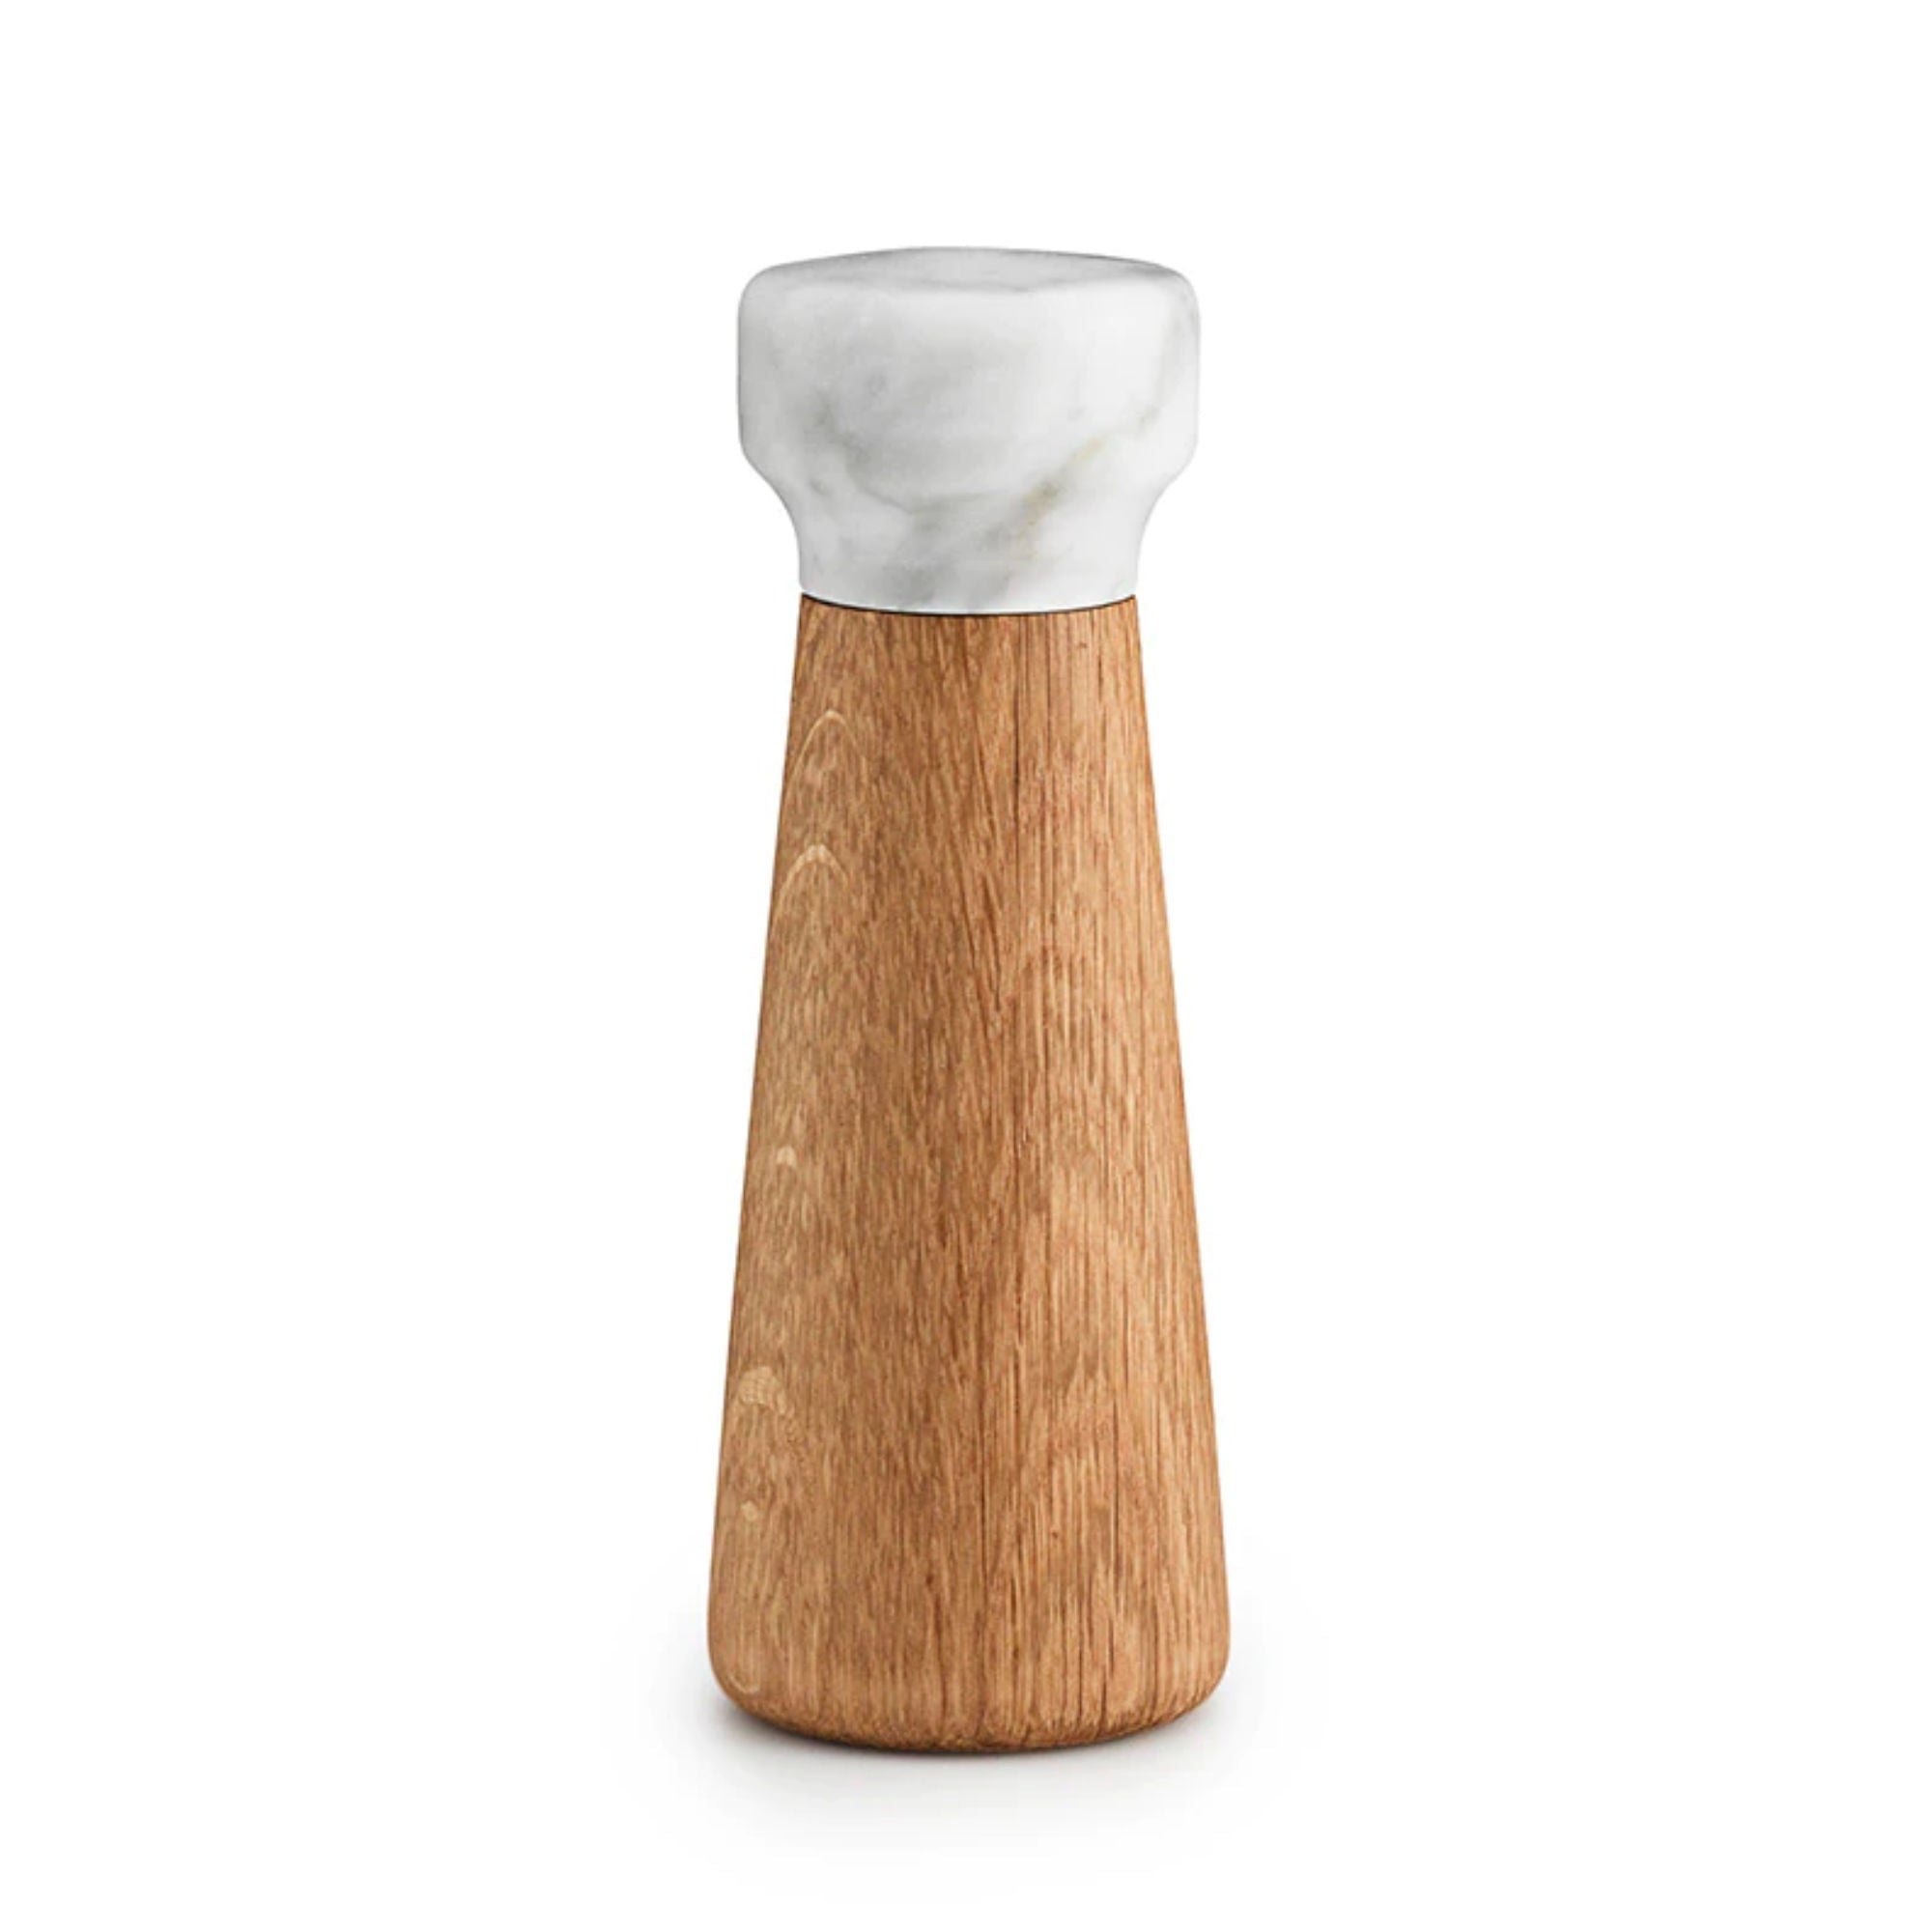 Normann Copenhagen Craft Salt Mill Small , Oak-White